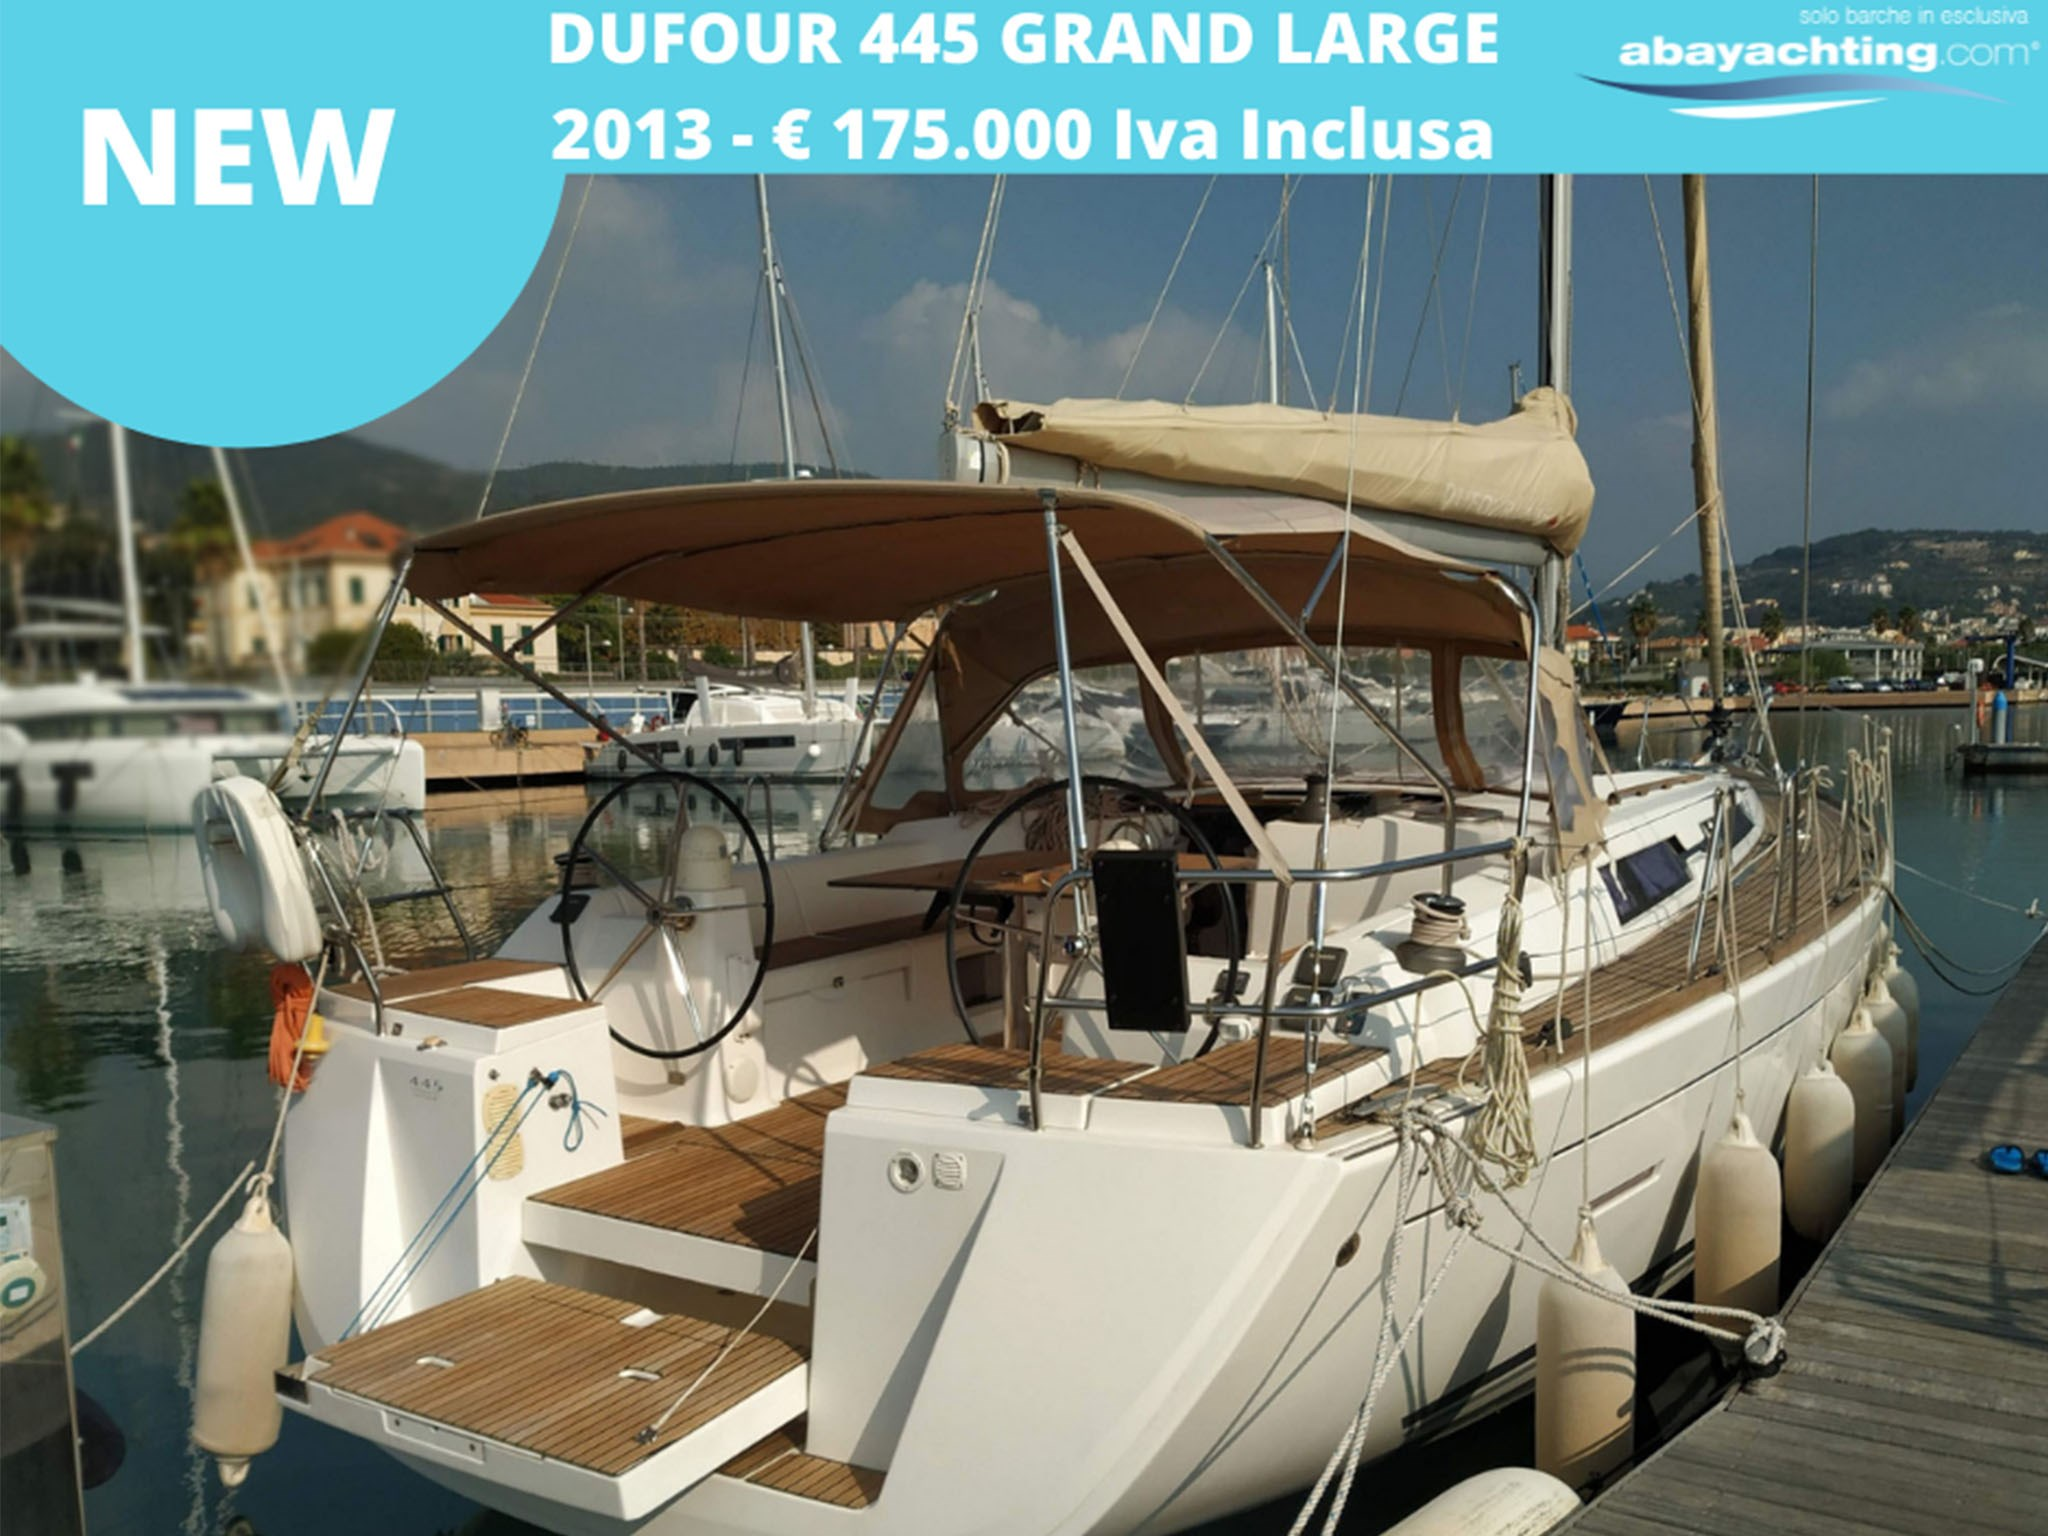 New arrival Dufour 445 Grand Large